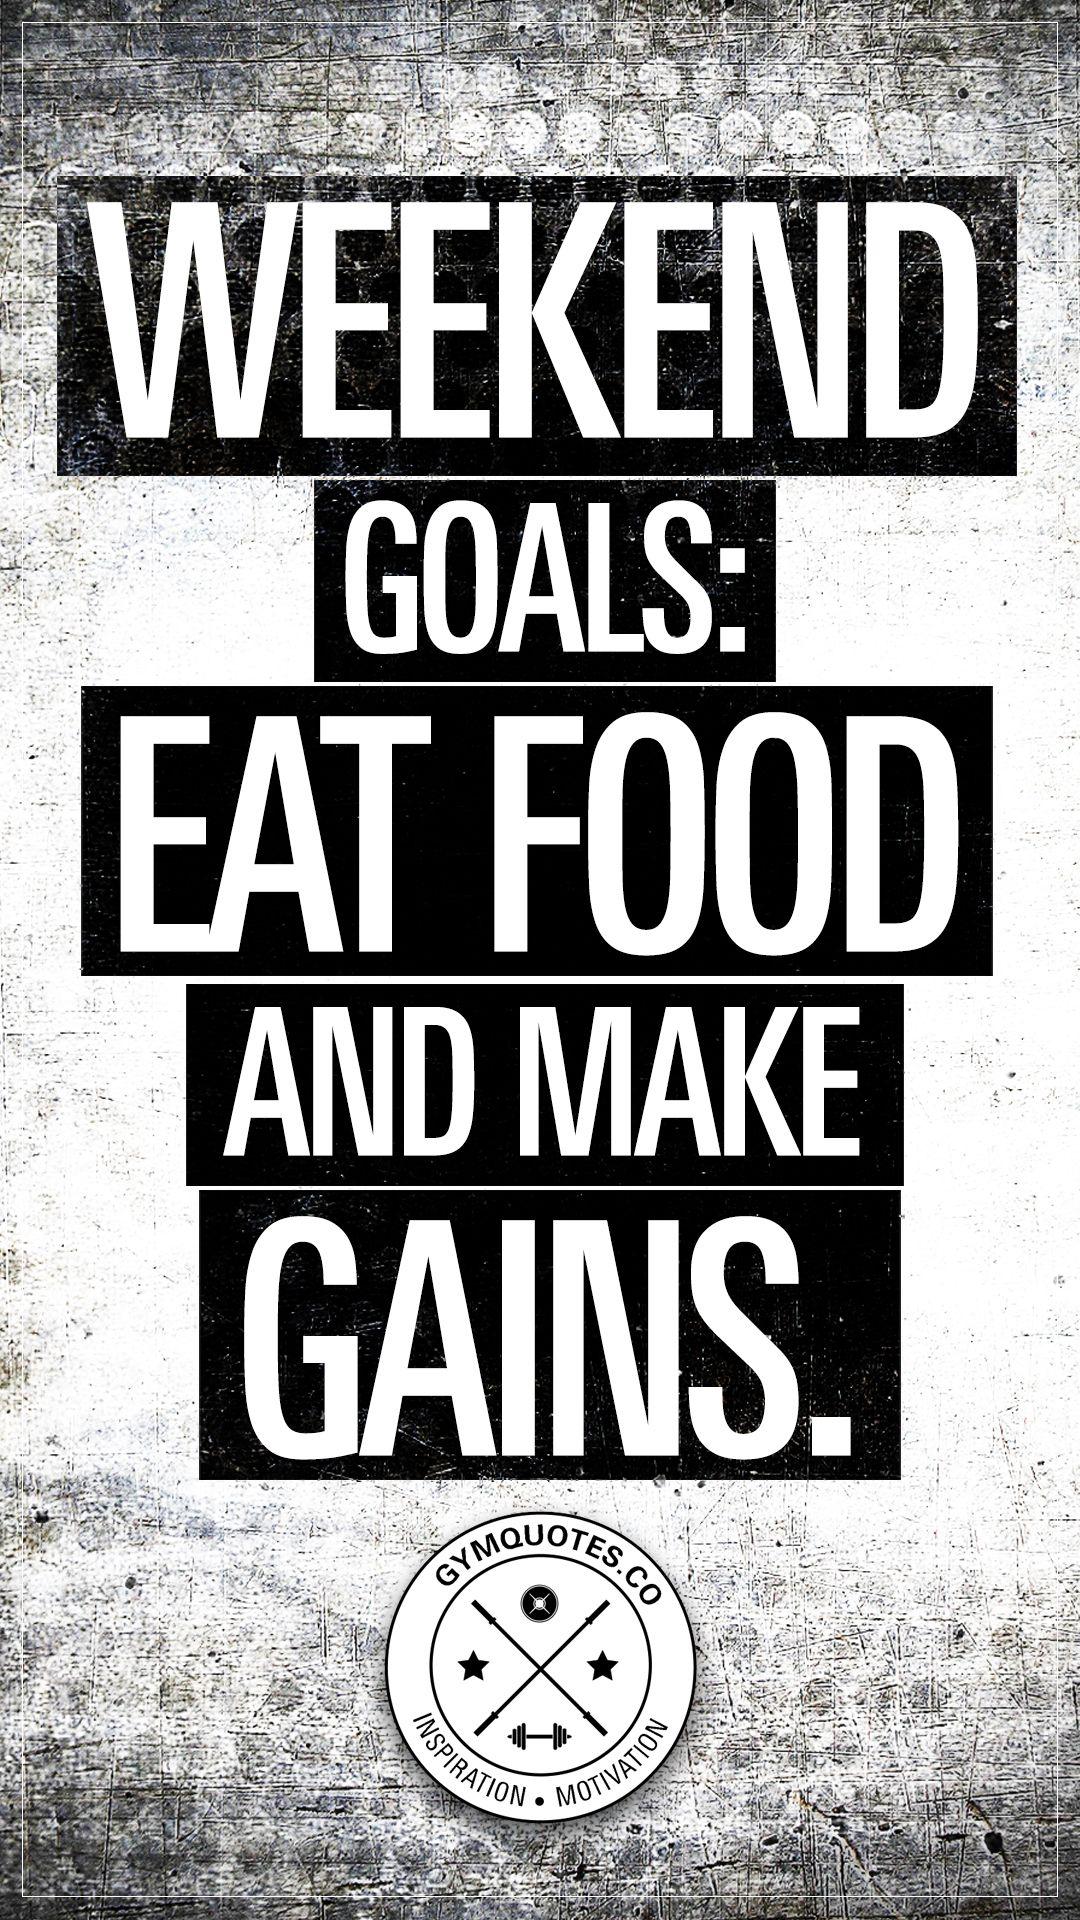 Weekend Goals Eat Food And Make Gains Fitness Inspiration Quotes Gym Quote Motivation